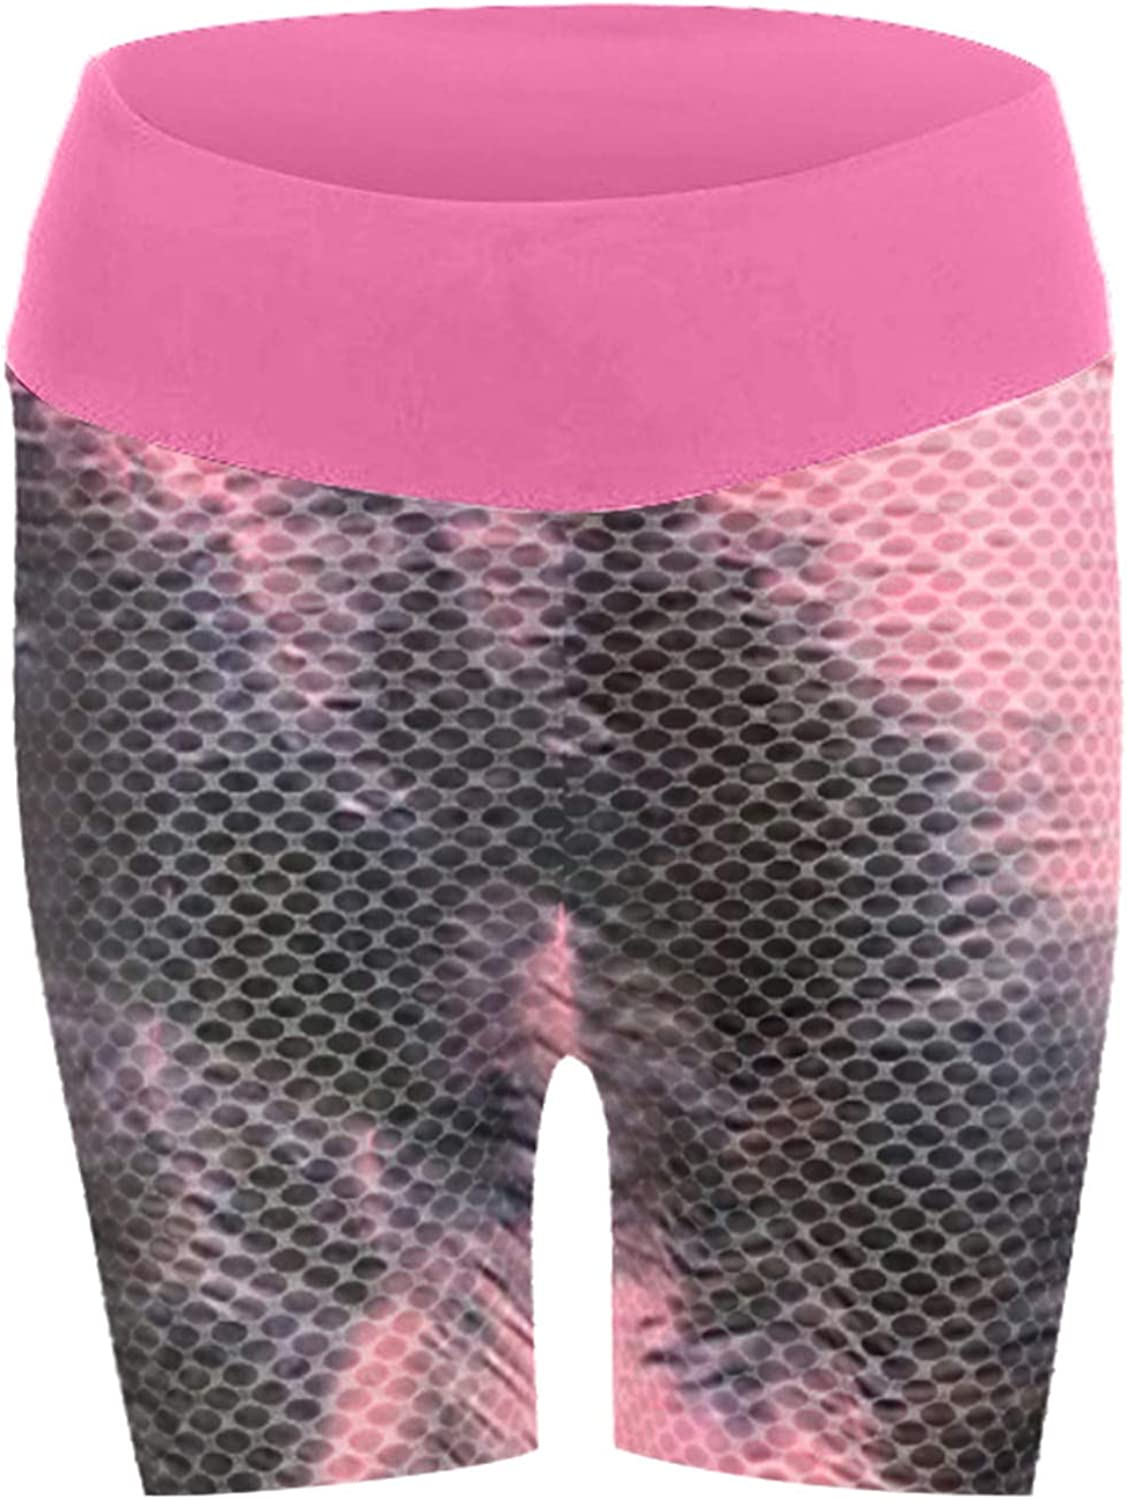 Euone_Clothes Women Yoga Pants, Womens Tie-dye Stretch Yoga Leggings Fitness Running Gym Sports Active Shorts